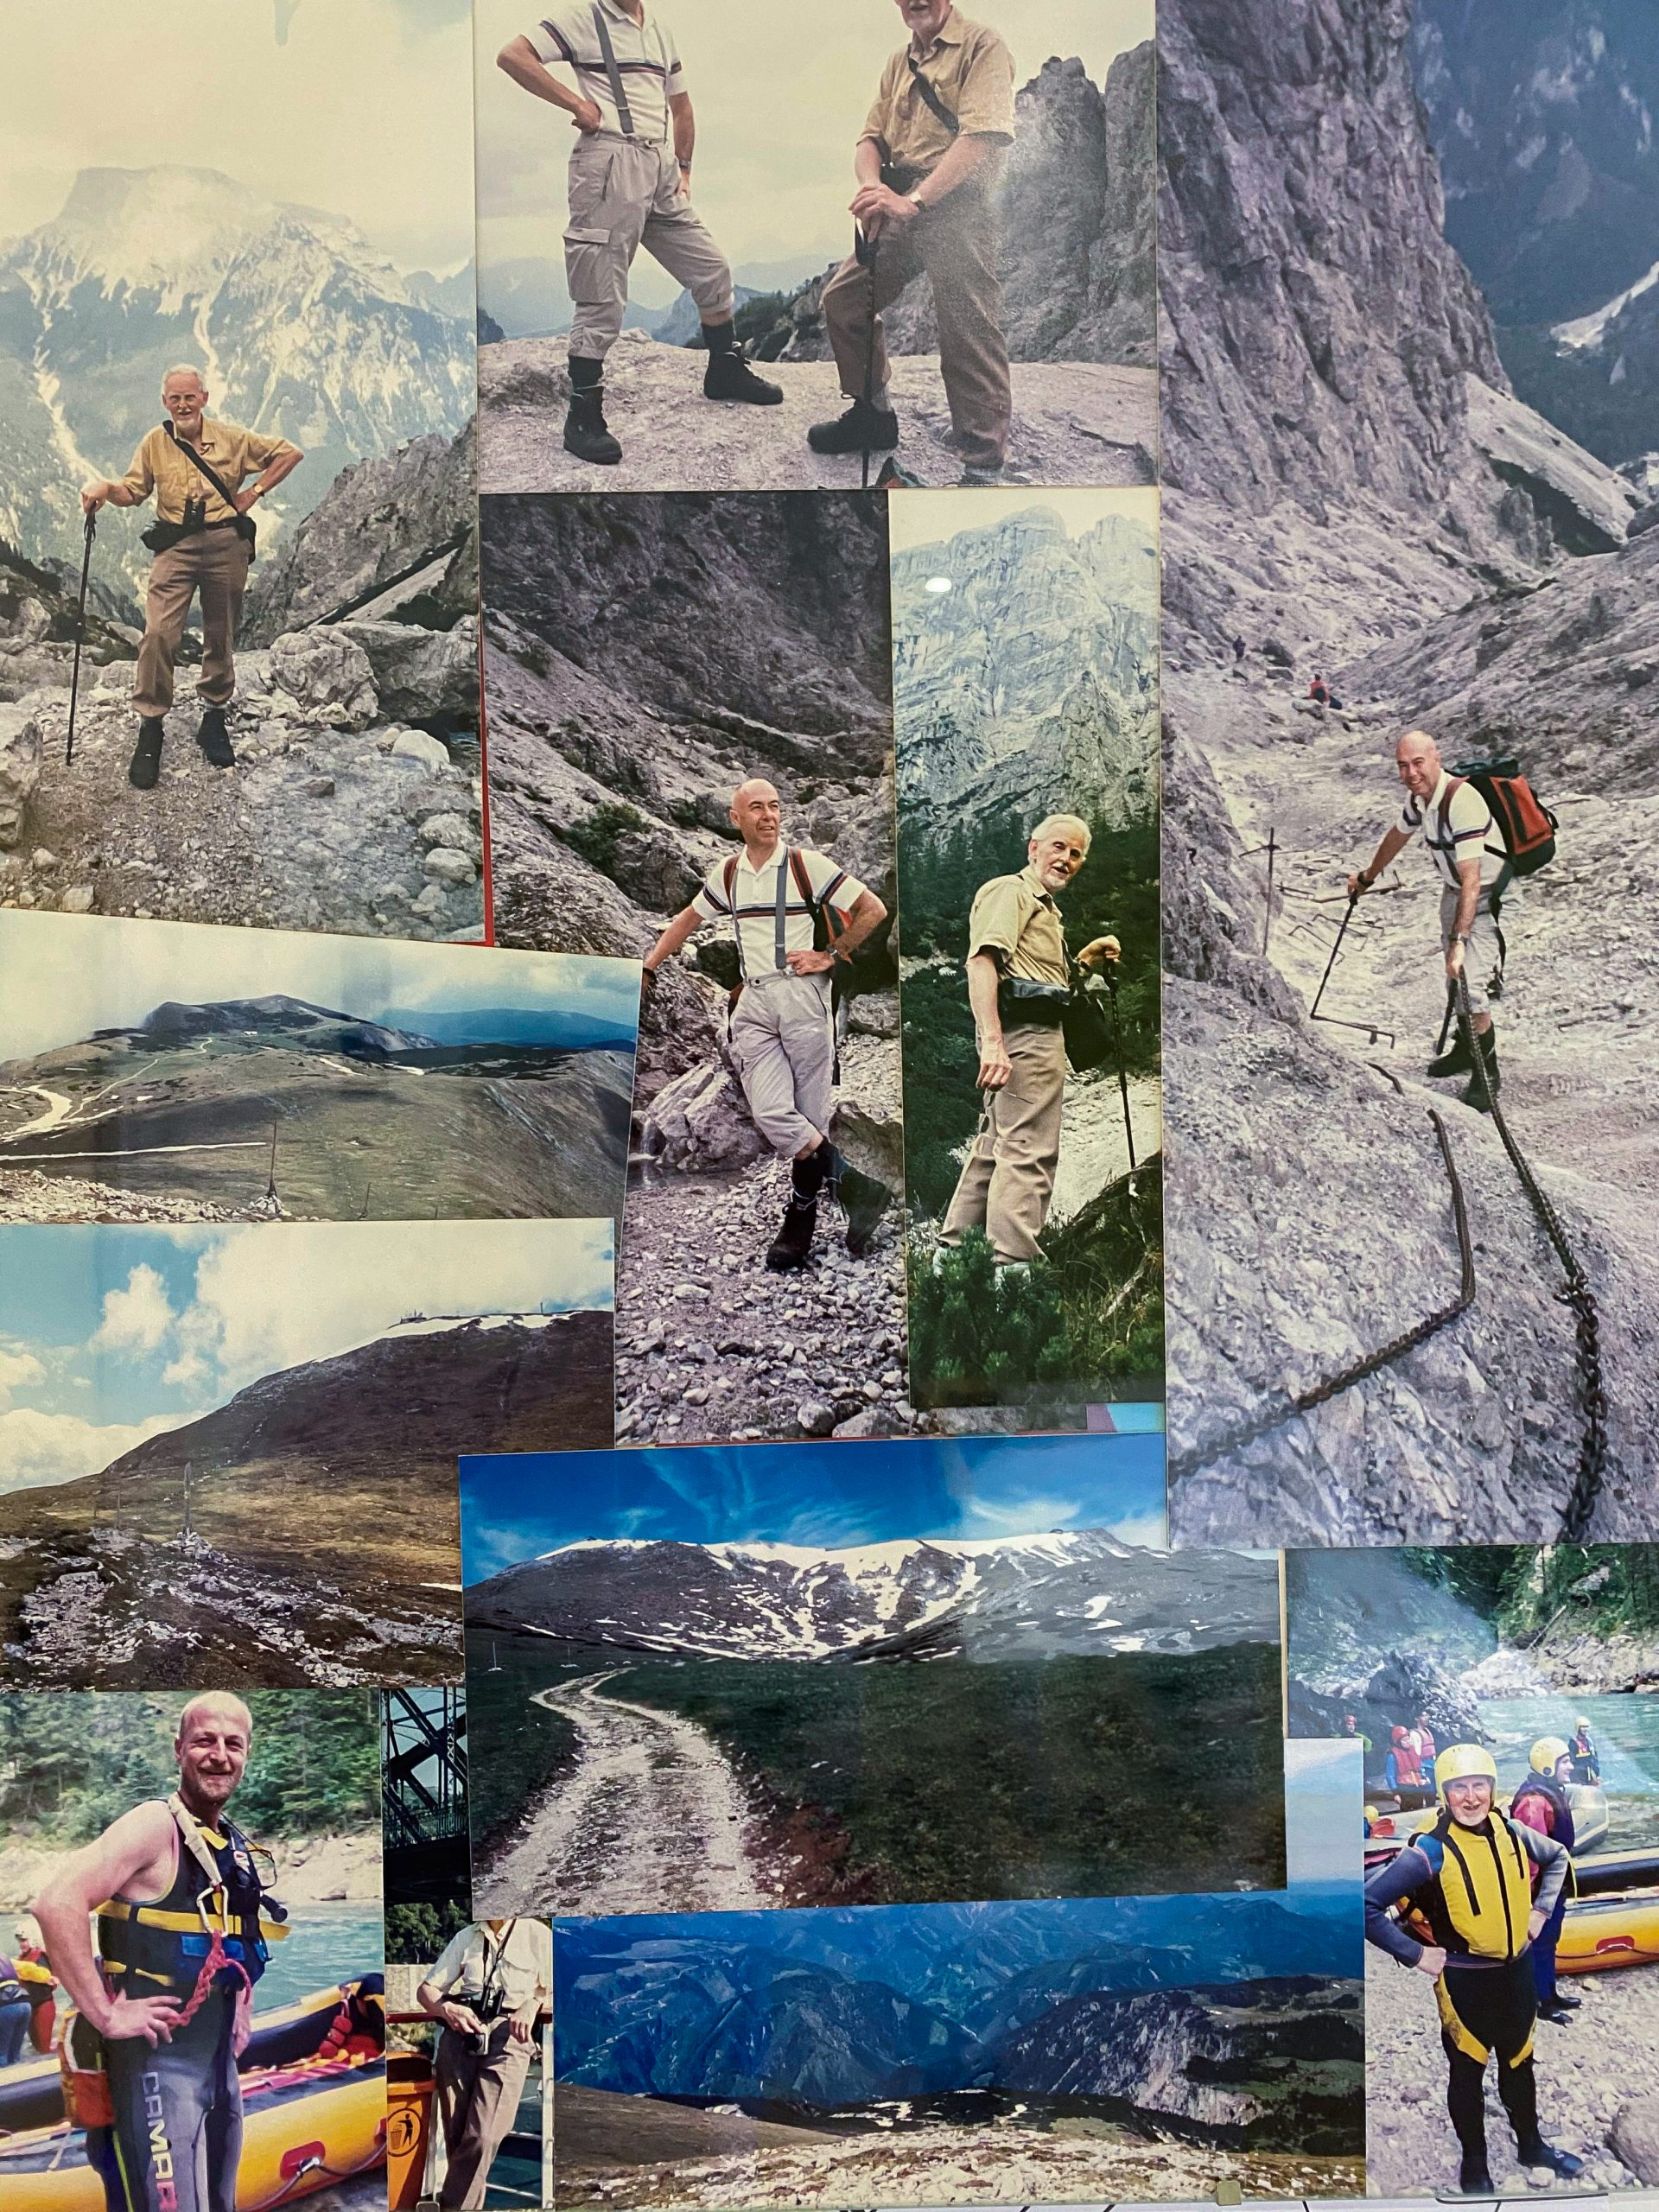 A collage of images showing Woking resident Brian hiking in Austria